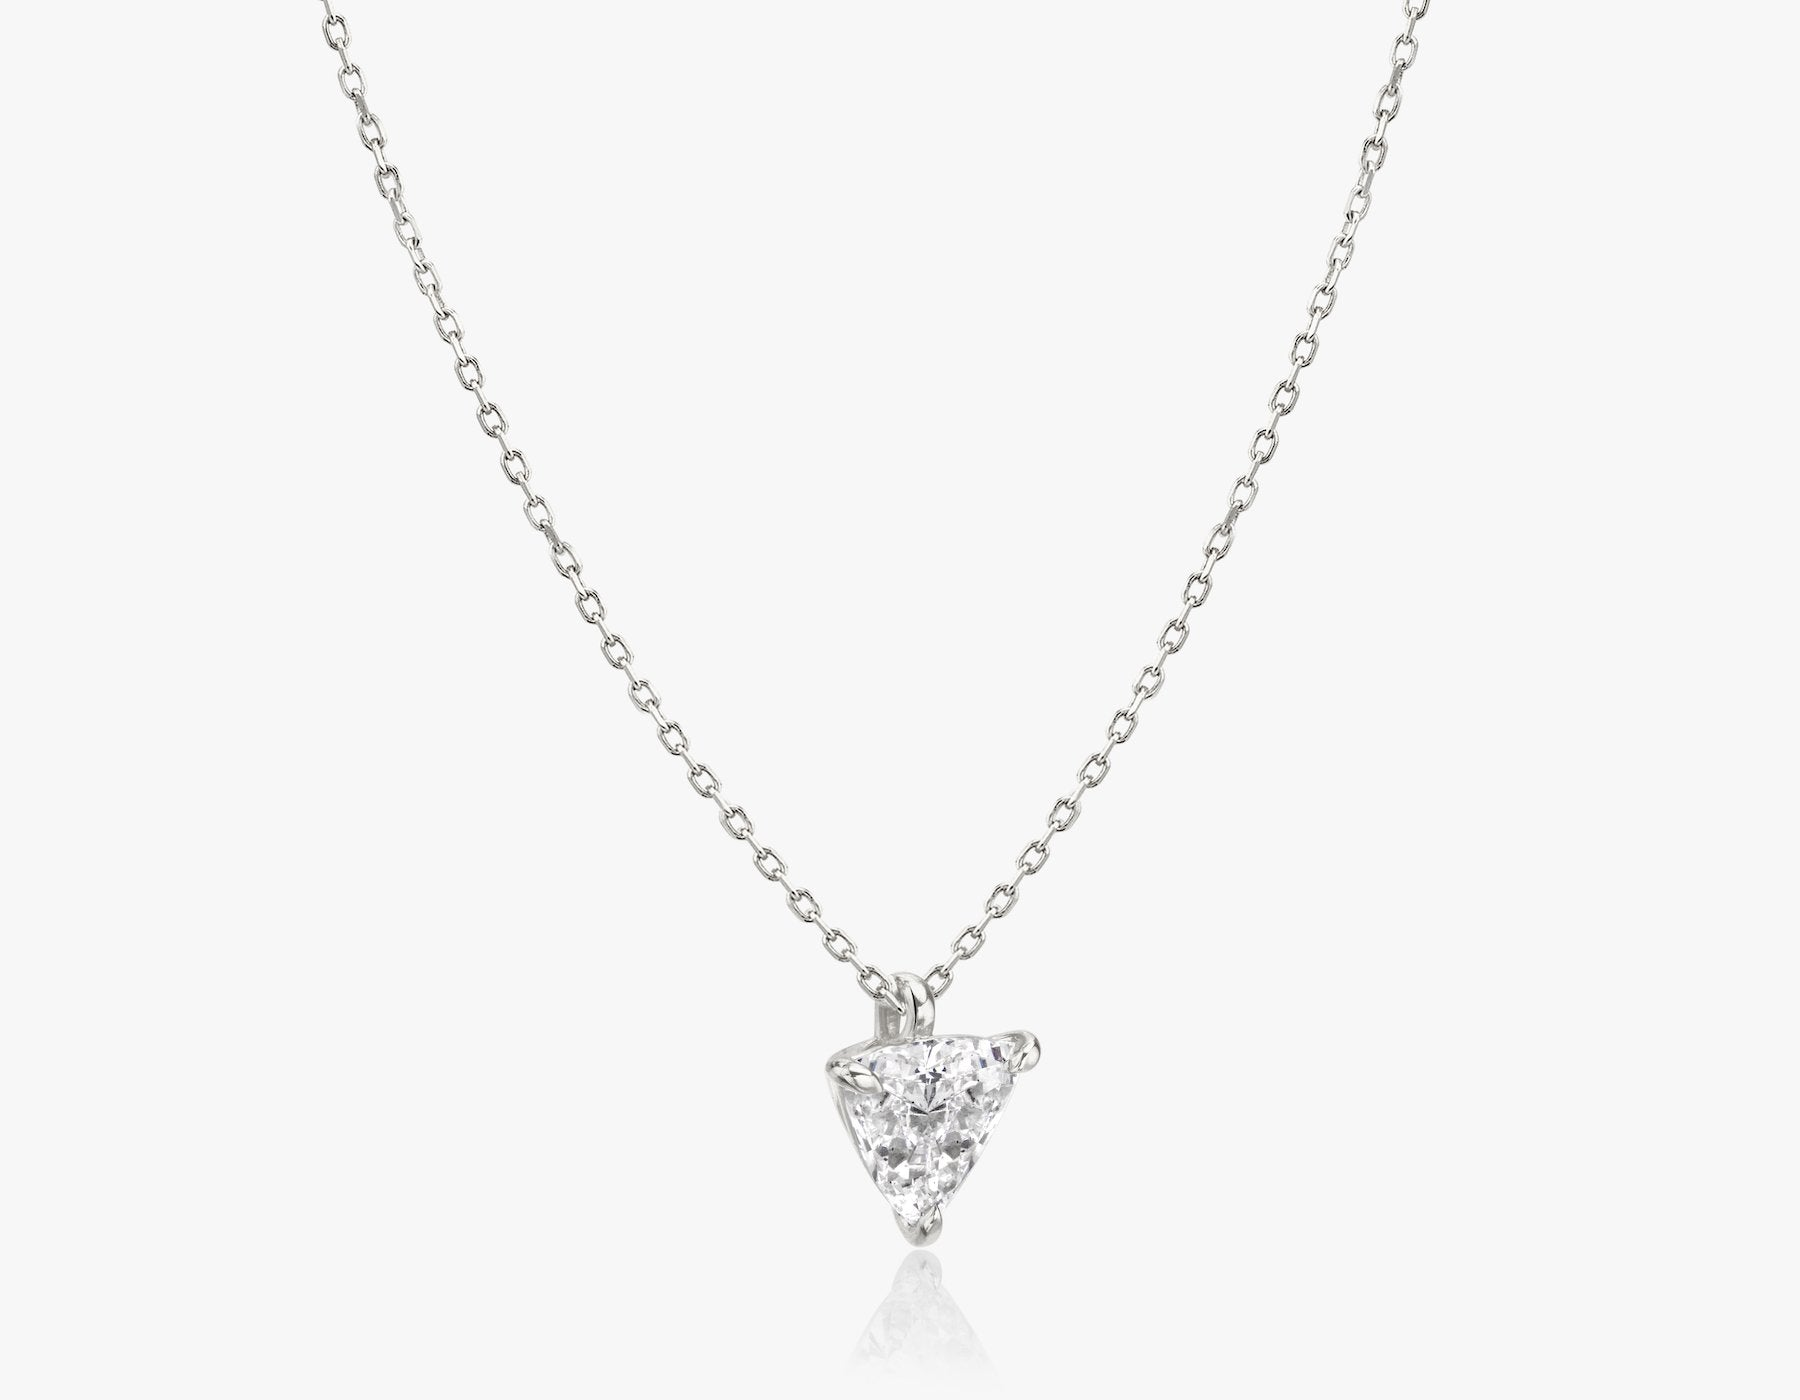 Vrai 14k solid gold Solitaire Trillion Diamond Pendant sustainably created triangle diamond prong set on simple chain necklace side view, 14K White Gold